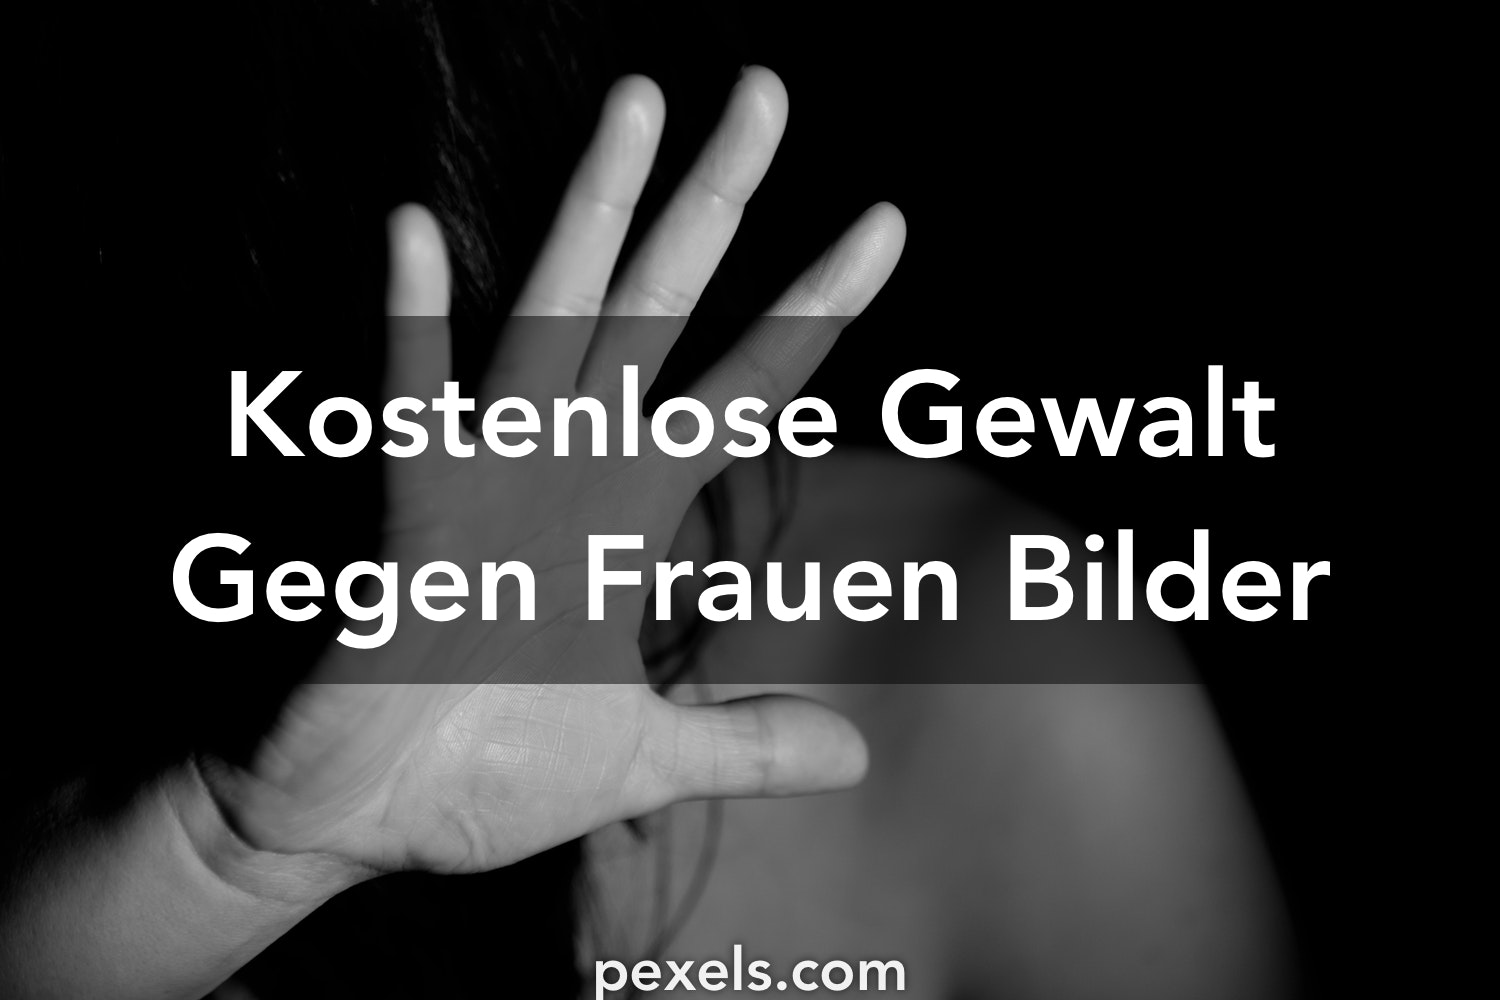 1000 gewalt gegen frauen fotos pexels kostenlose stock fotos. Black Bedroom Furniture Sets. Home Design Ideas